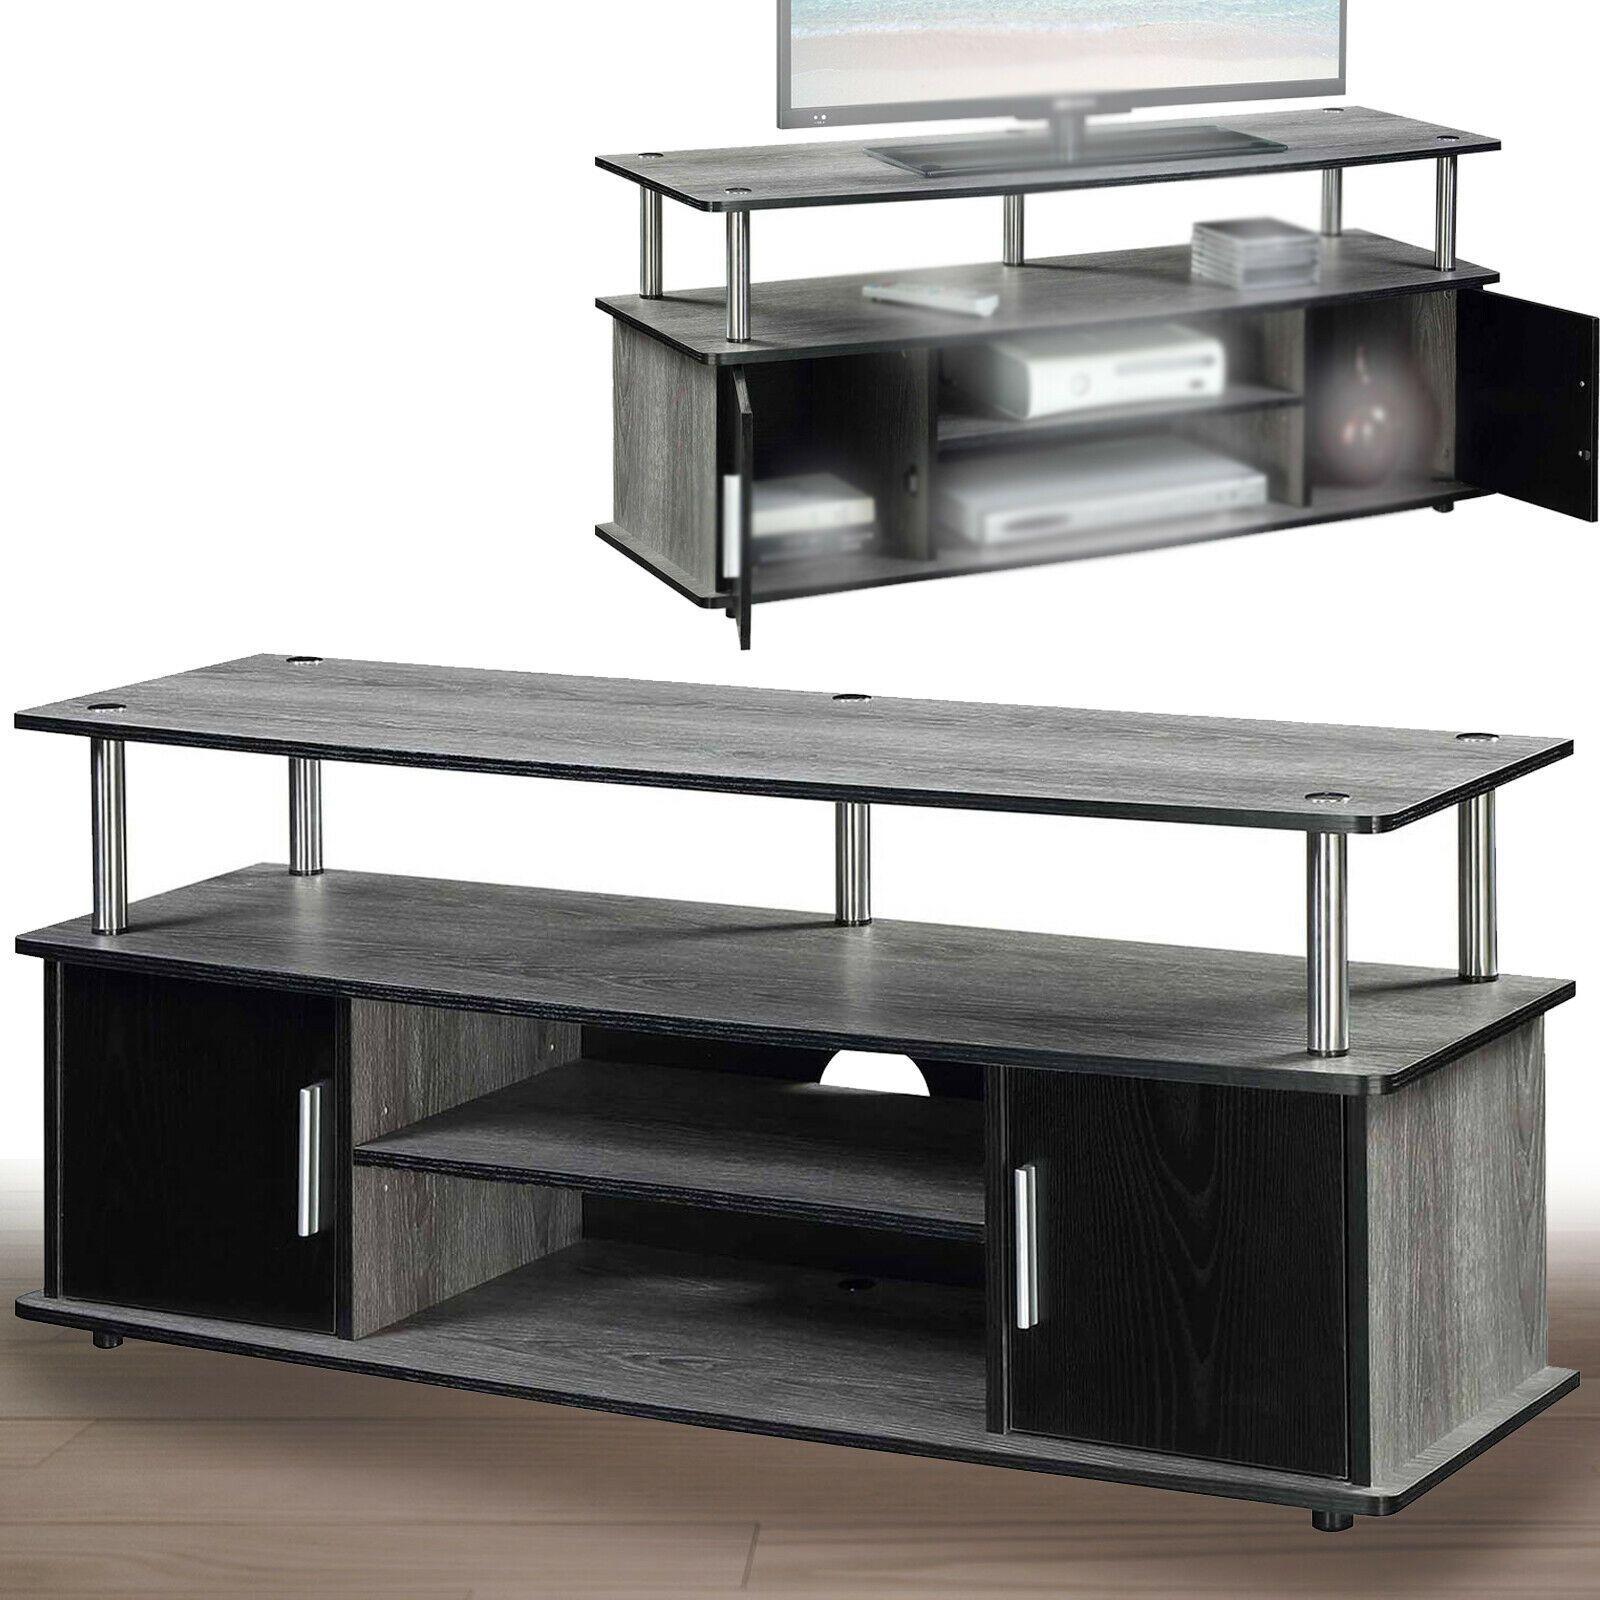 Mount Factory Modern Tabletop TV Stand Universal Flat Screen Base Replacement